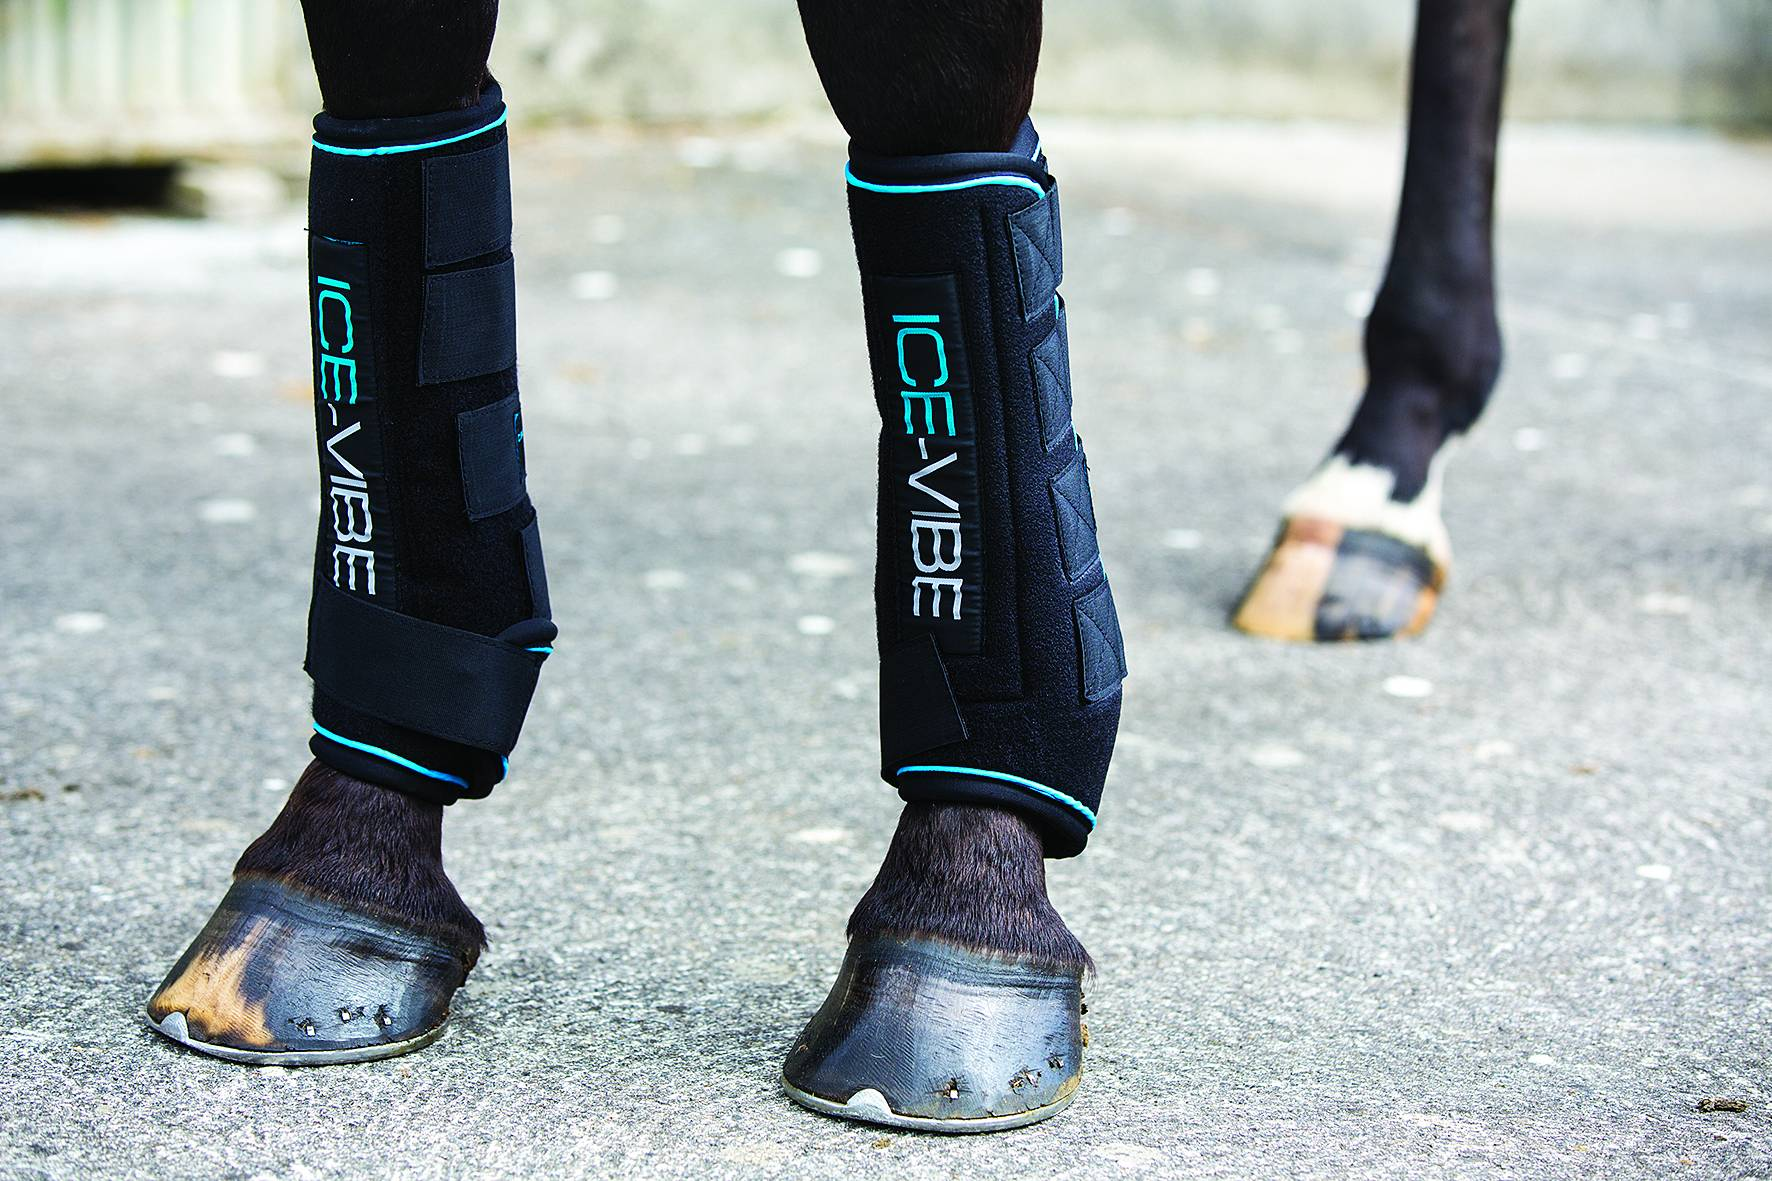 Ice-Vibe Boot